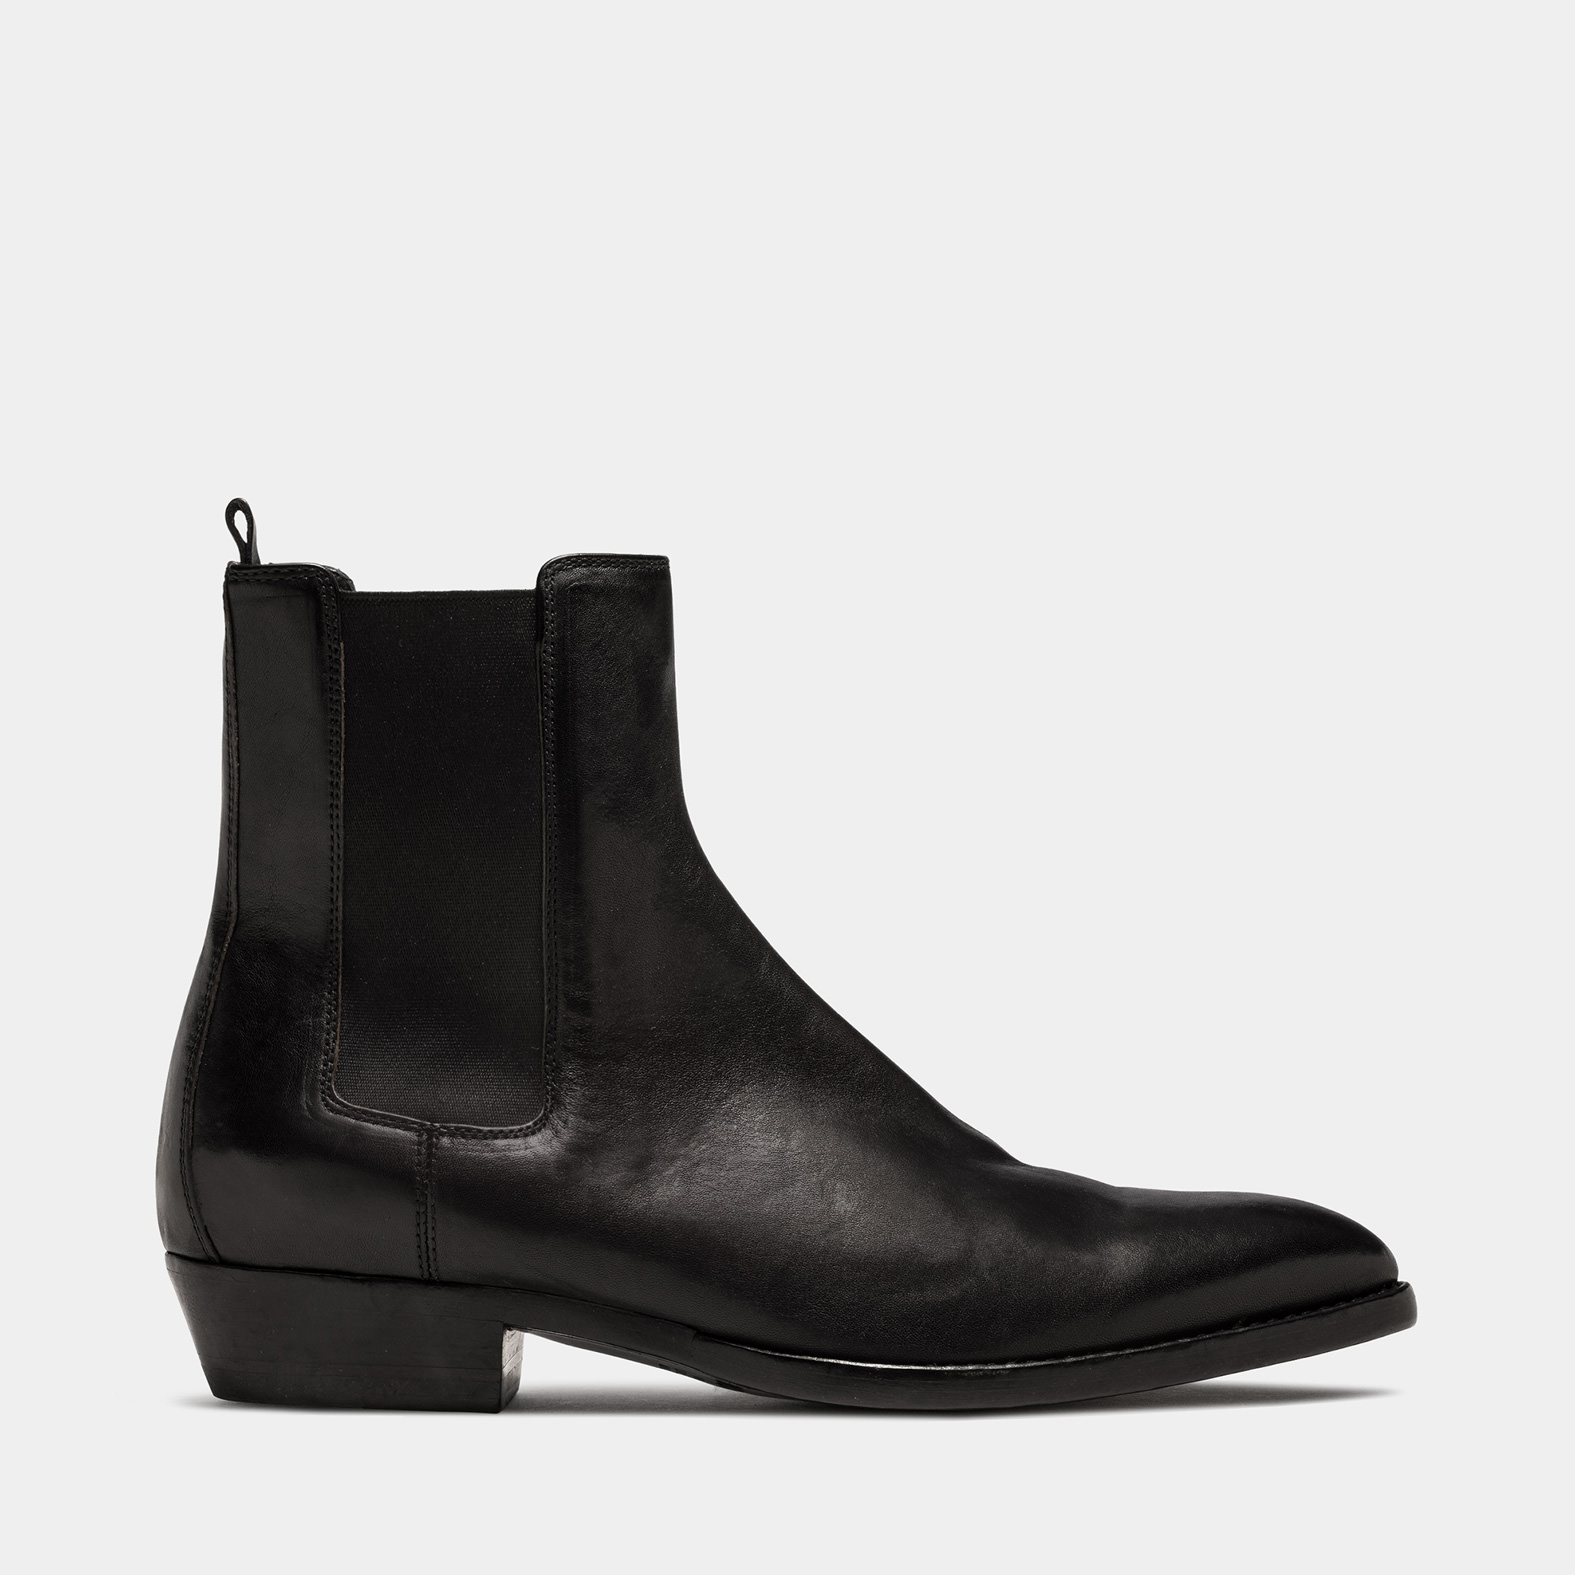 BUTTERO: FARGO ANKLE BOOTS IN BLACK LEATHER